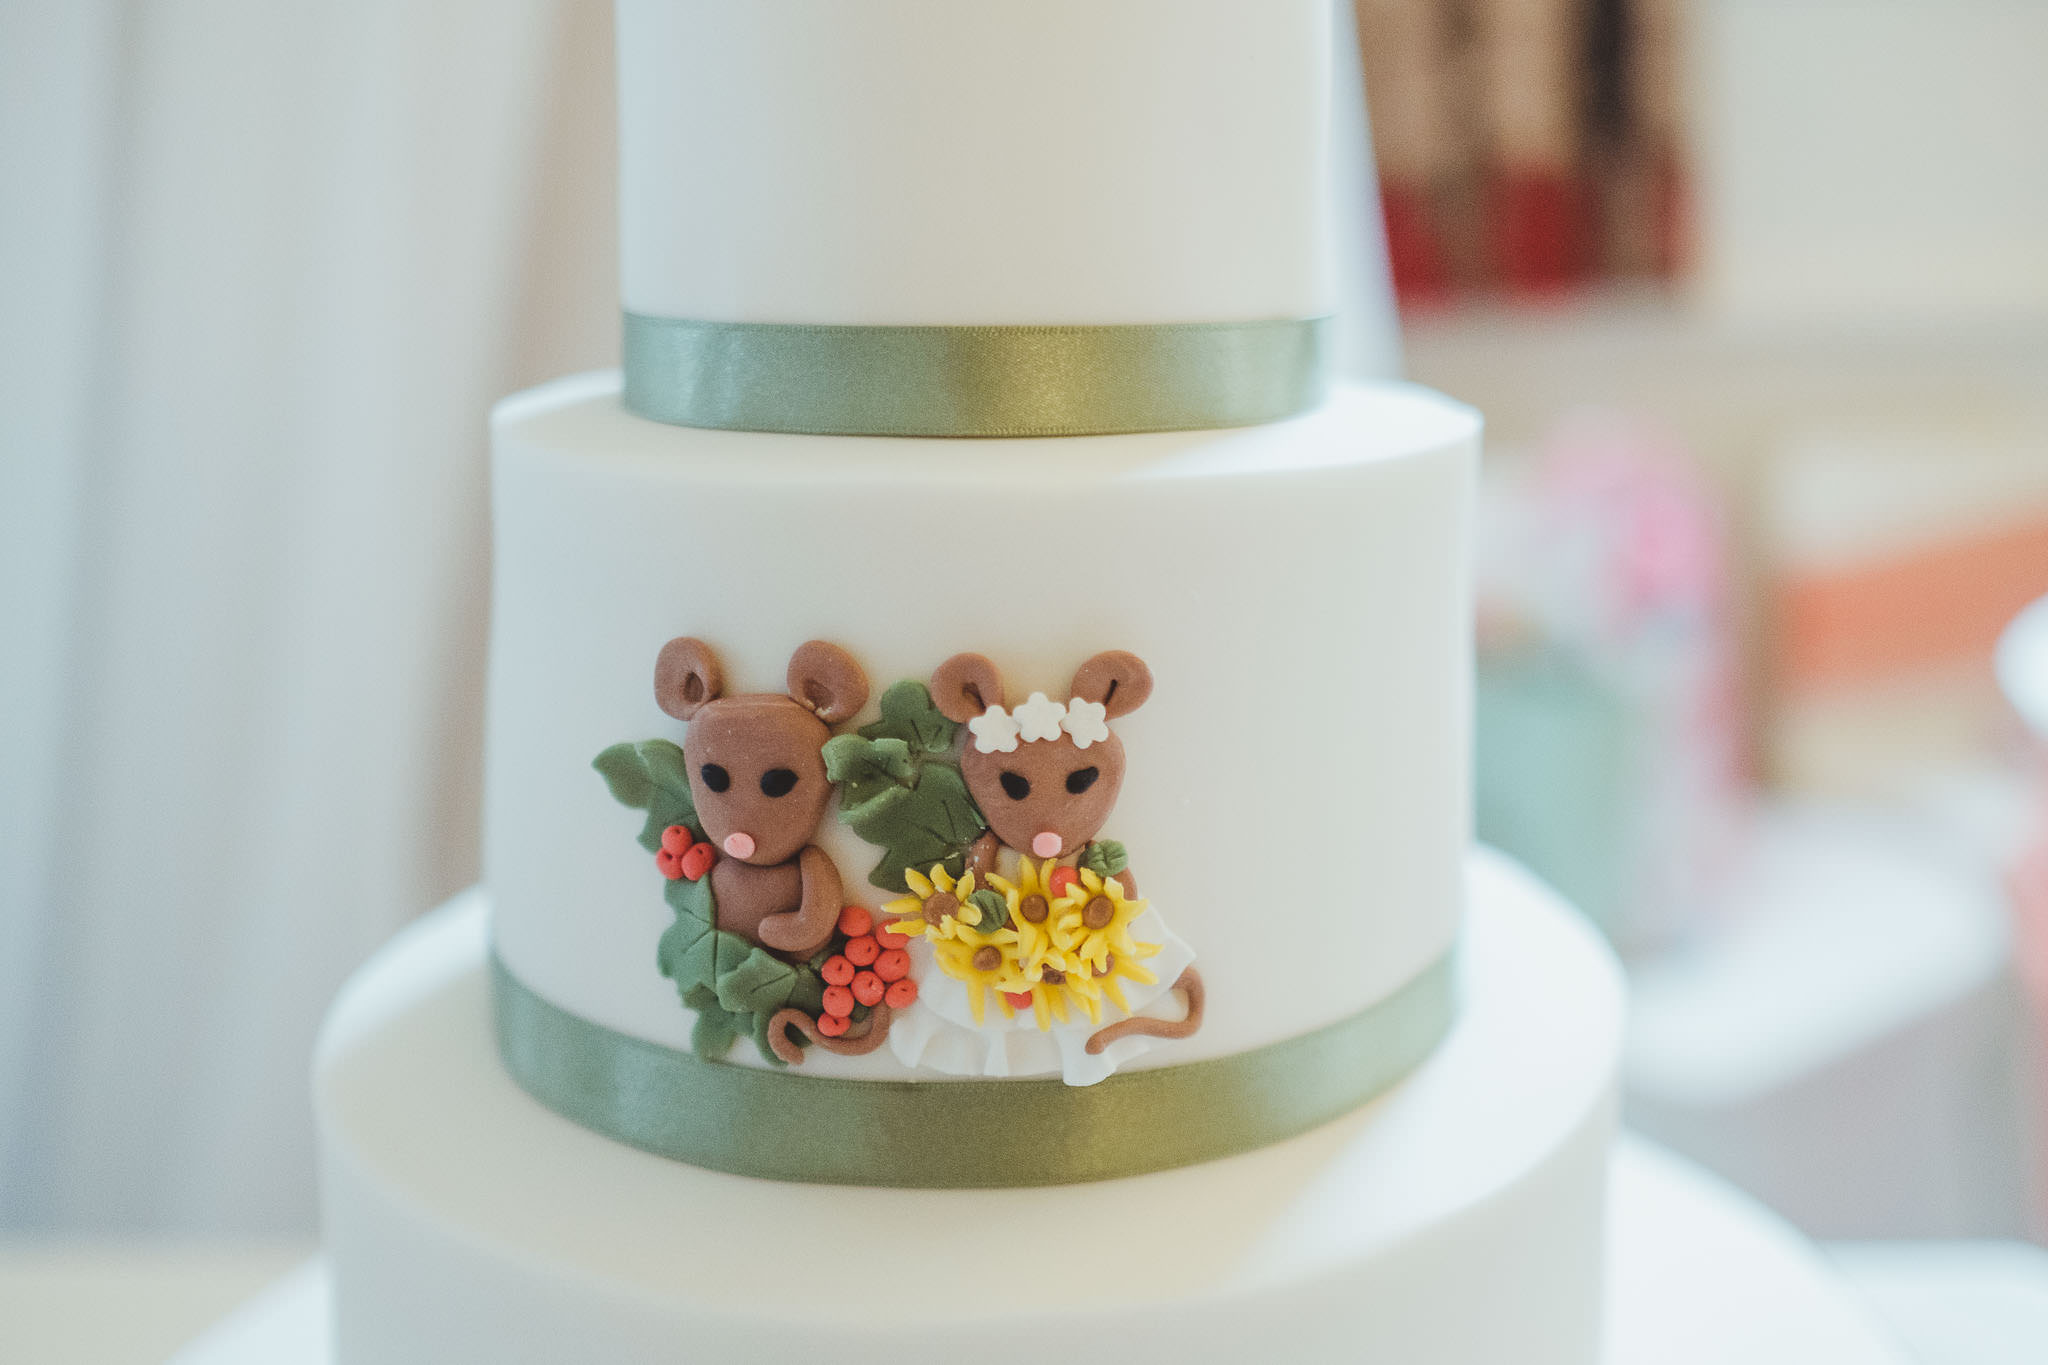 Wedding cake close up of field mice decorations